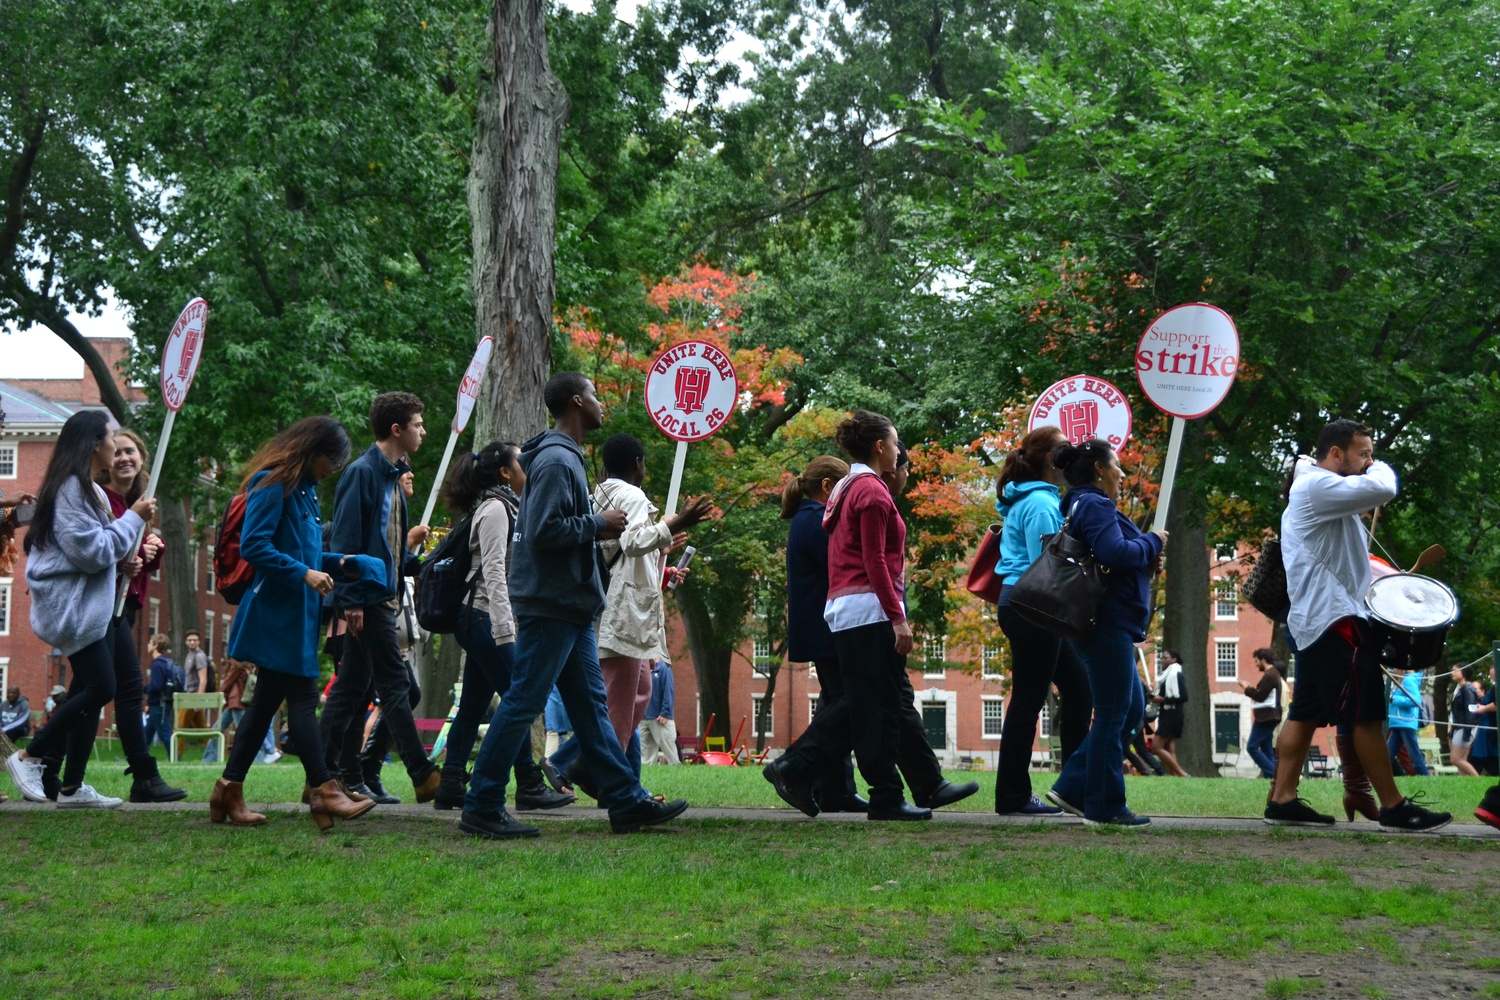 Harvard affiliates and HUDS workers circled Harvard Yard Friday afternoon, marching in support of the decision for HUDS workers to strike next Wednesday if the University does not comply with their requests.